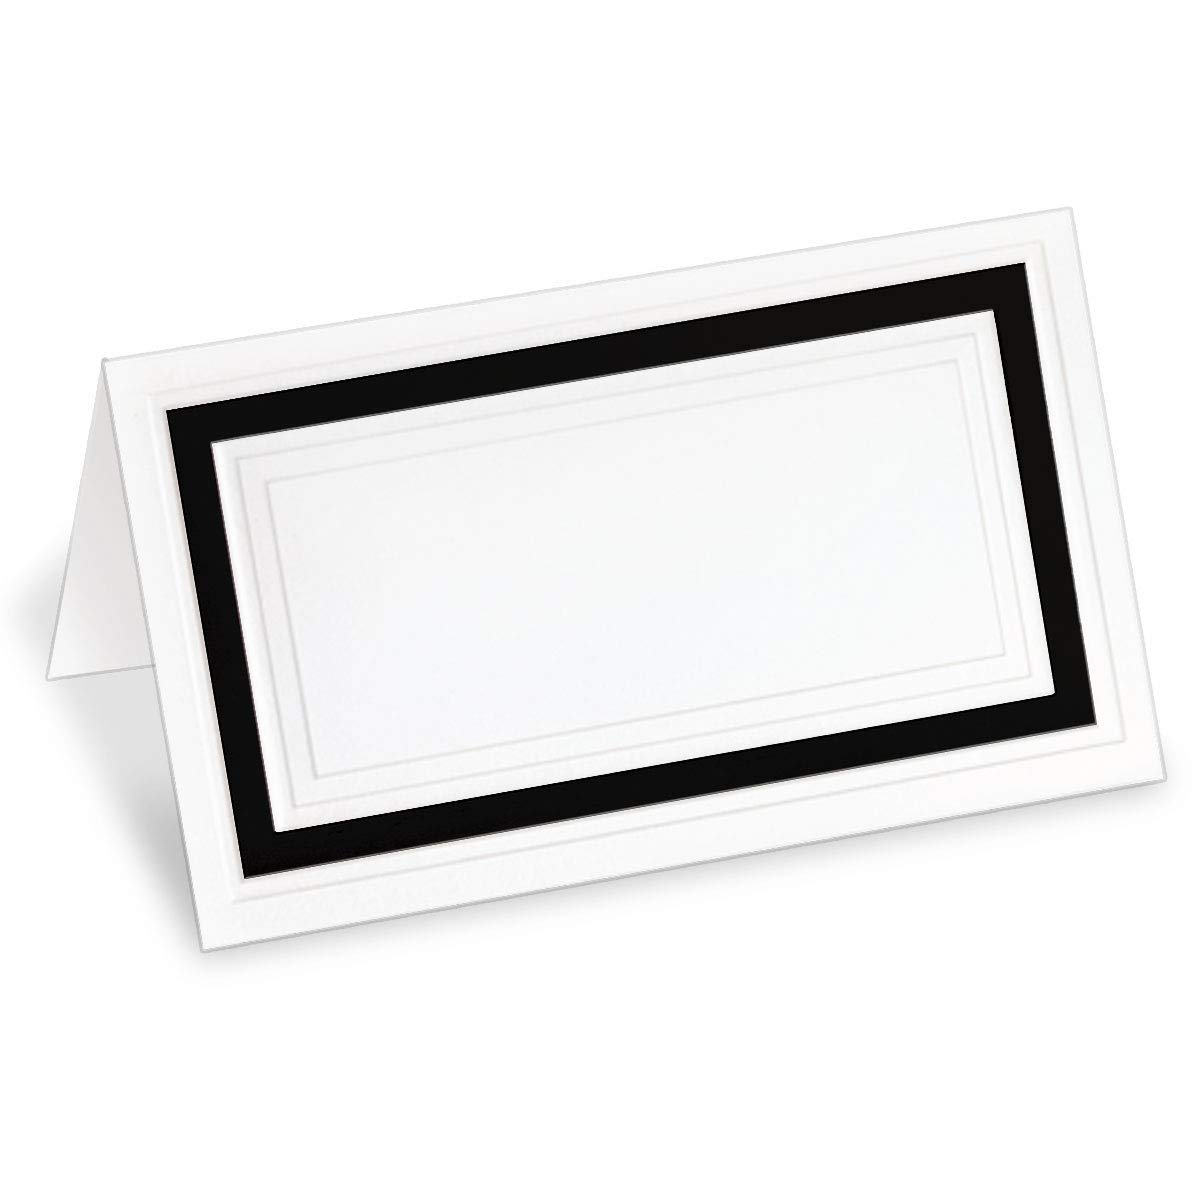 PaperDirect White 38lb Cover Stock Folded Place Cards with Black Foil Border, Micro-Perforated, 2'' x 3 1/2'', 200/Pack, Laser and Inkjet Compatible by PaperDirect